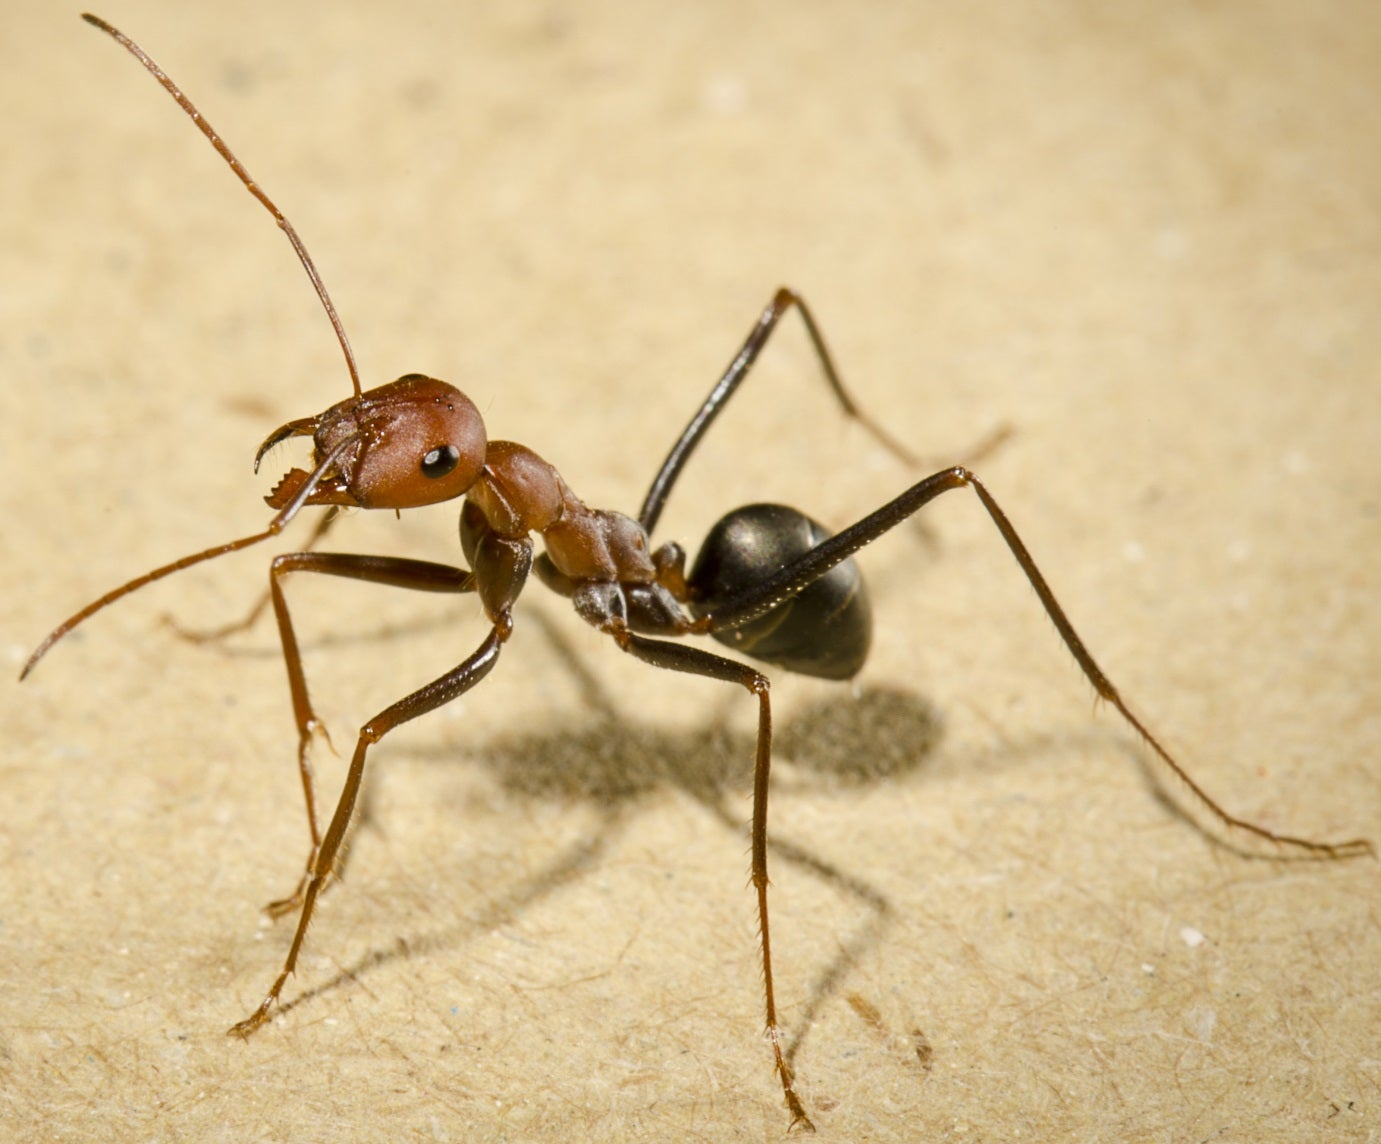 Ants can find their way home walking backwards, but they have to peek first